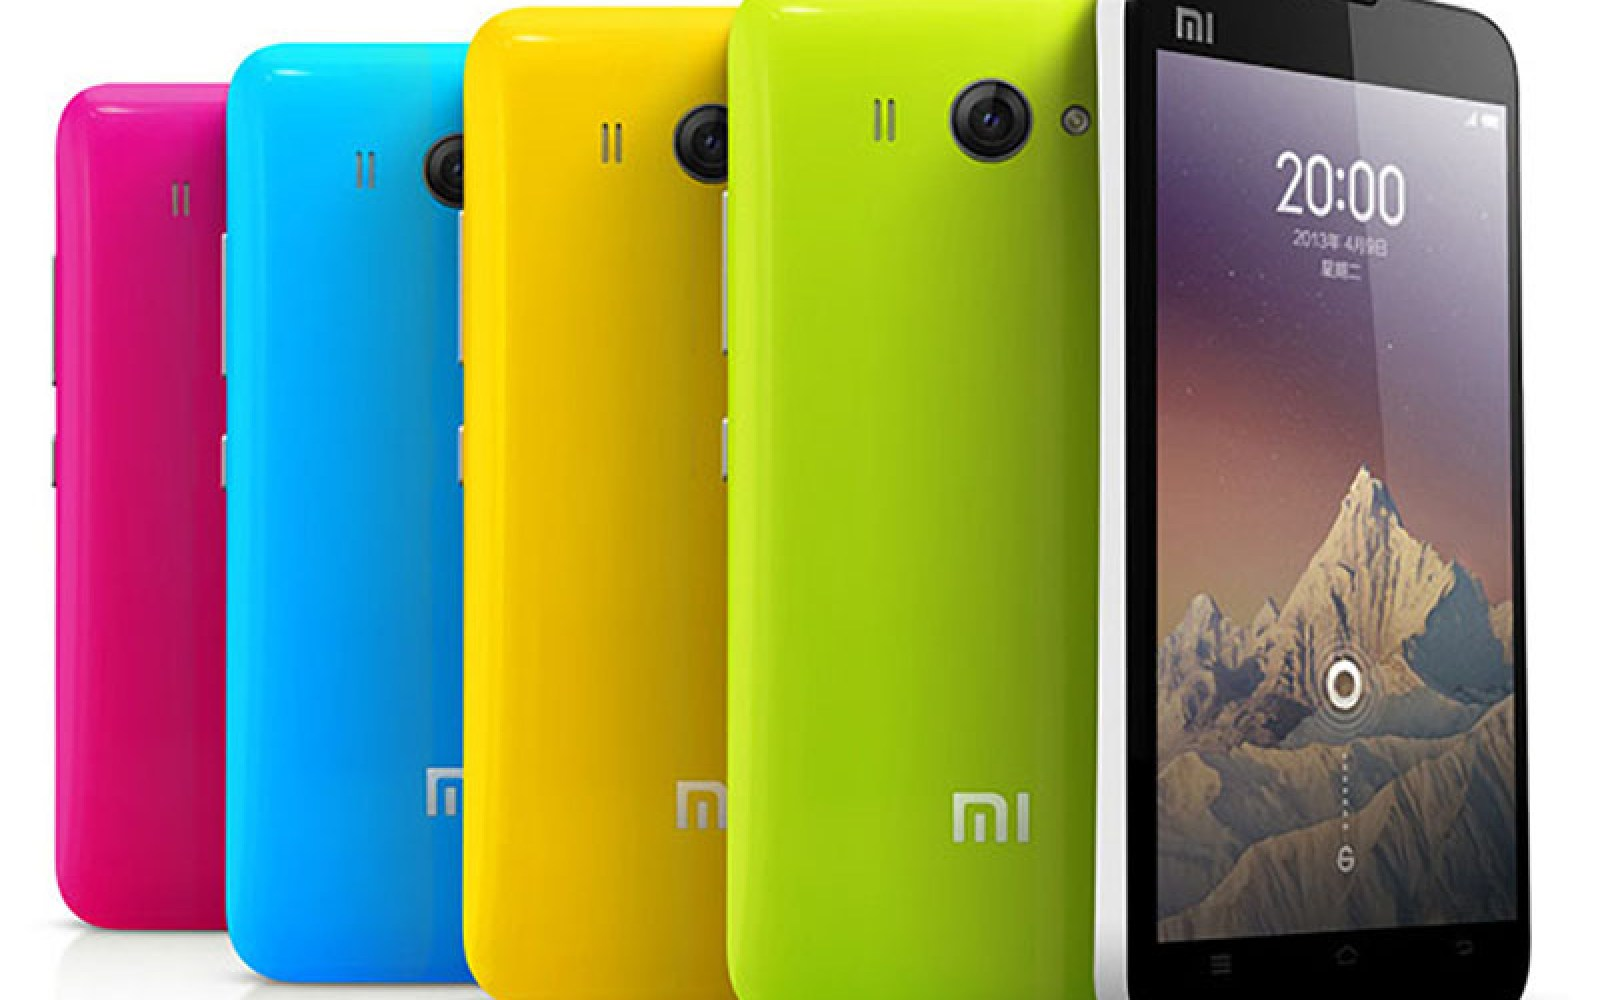 Xiaomi overtakes LG to become world's third-largest smartphone maker